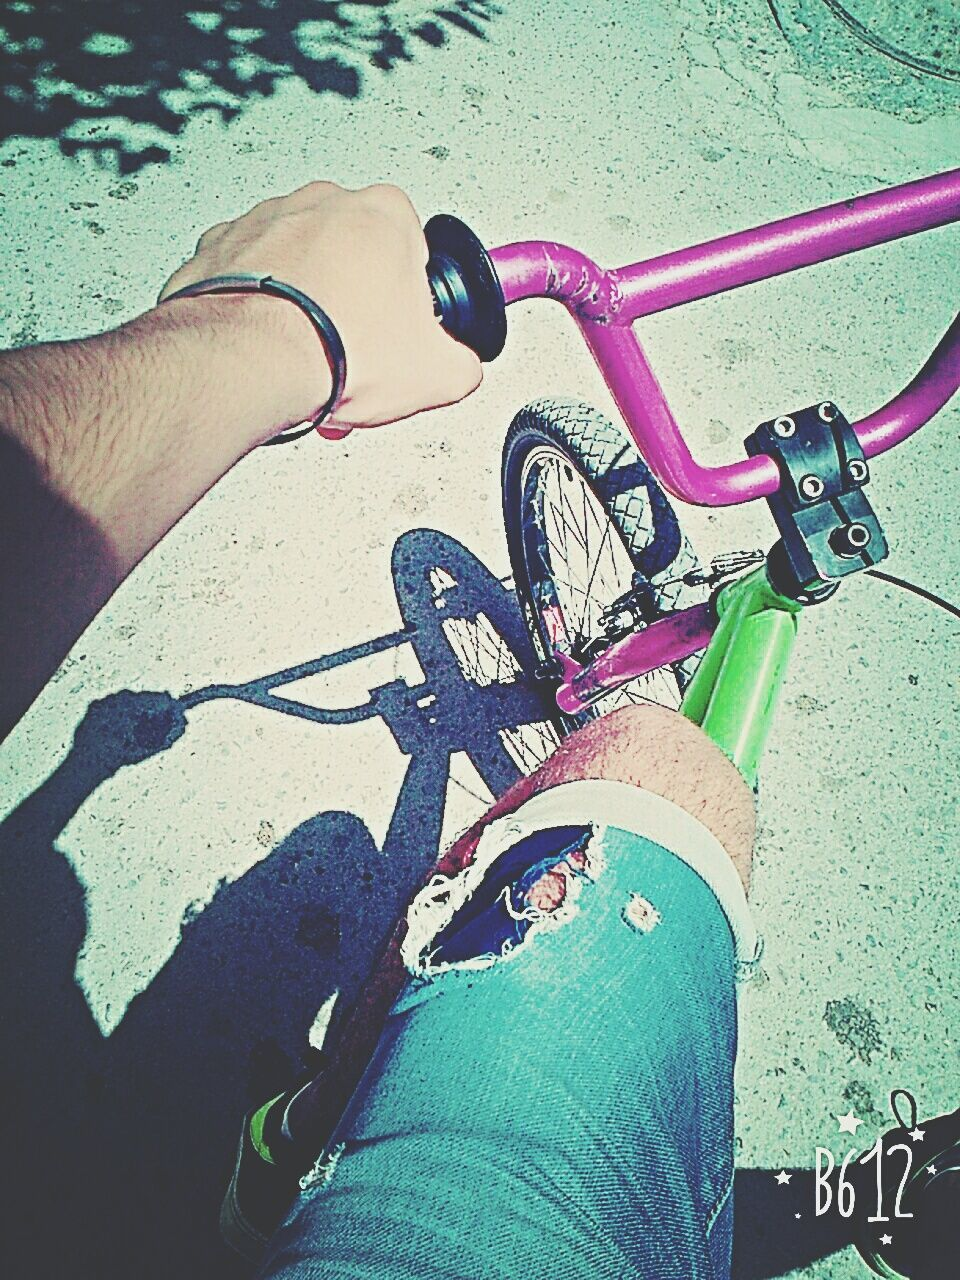 human leg, human body part, low section, personal perspective, one person, real people, bicycle, lifestyles, high angle view, human hand, outdoors, leisure activity, riding, sunlight, shadow, transportation, day, road, close-up, women, men, adult, people, adults only